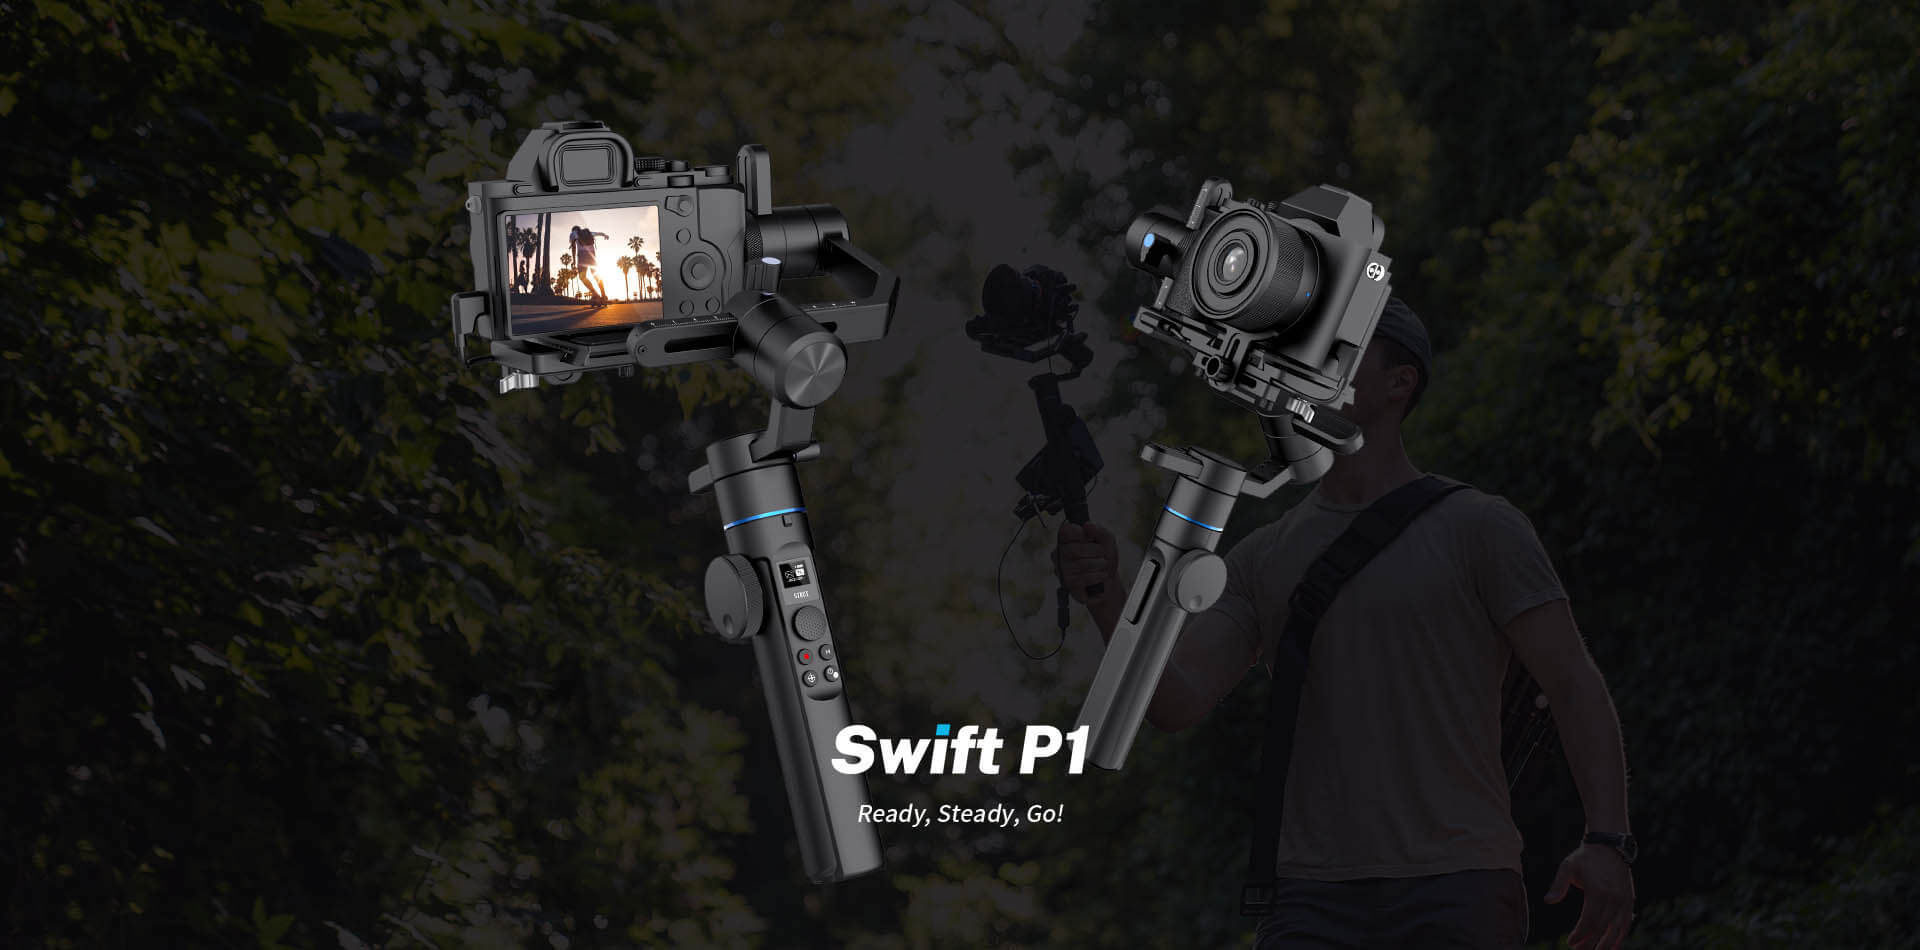 SIRUI Swift P1 Gimbal